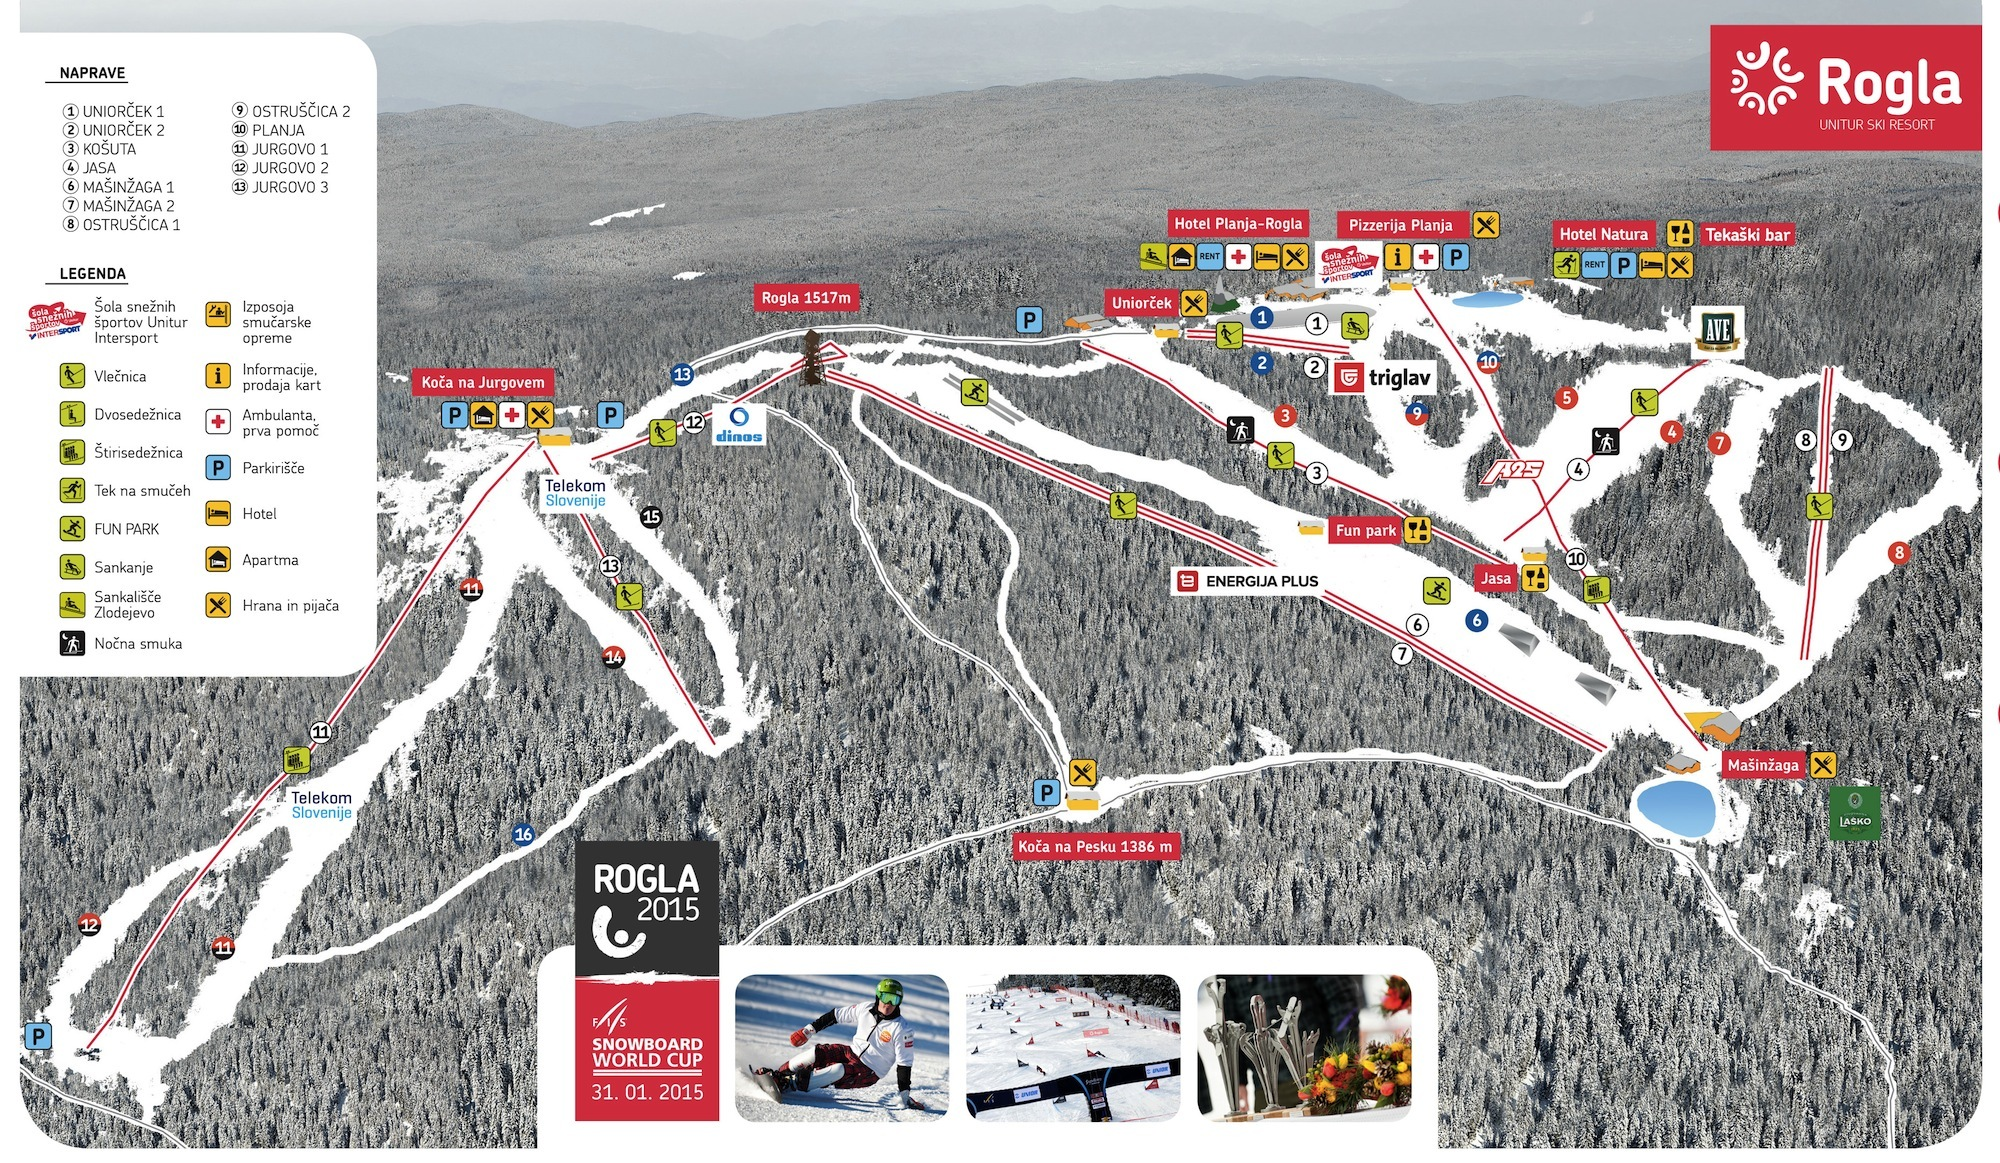 Rogla Piste / Trail Map